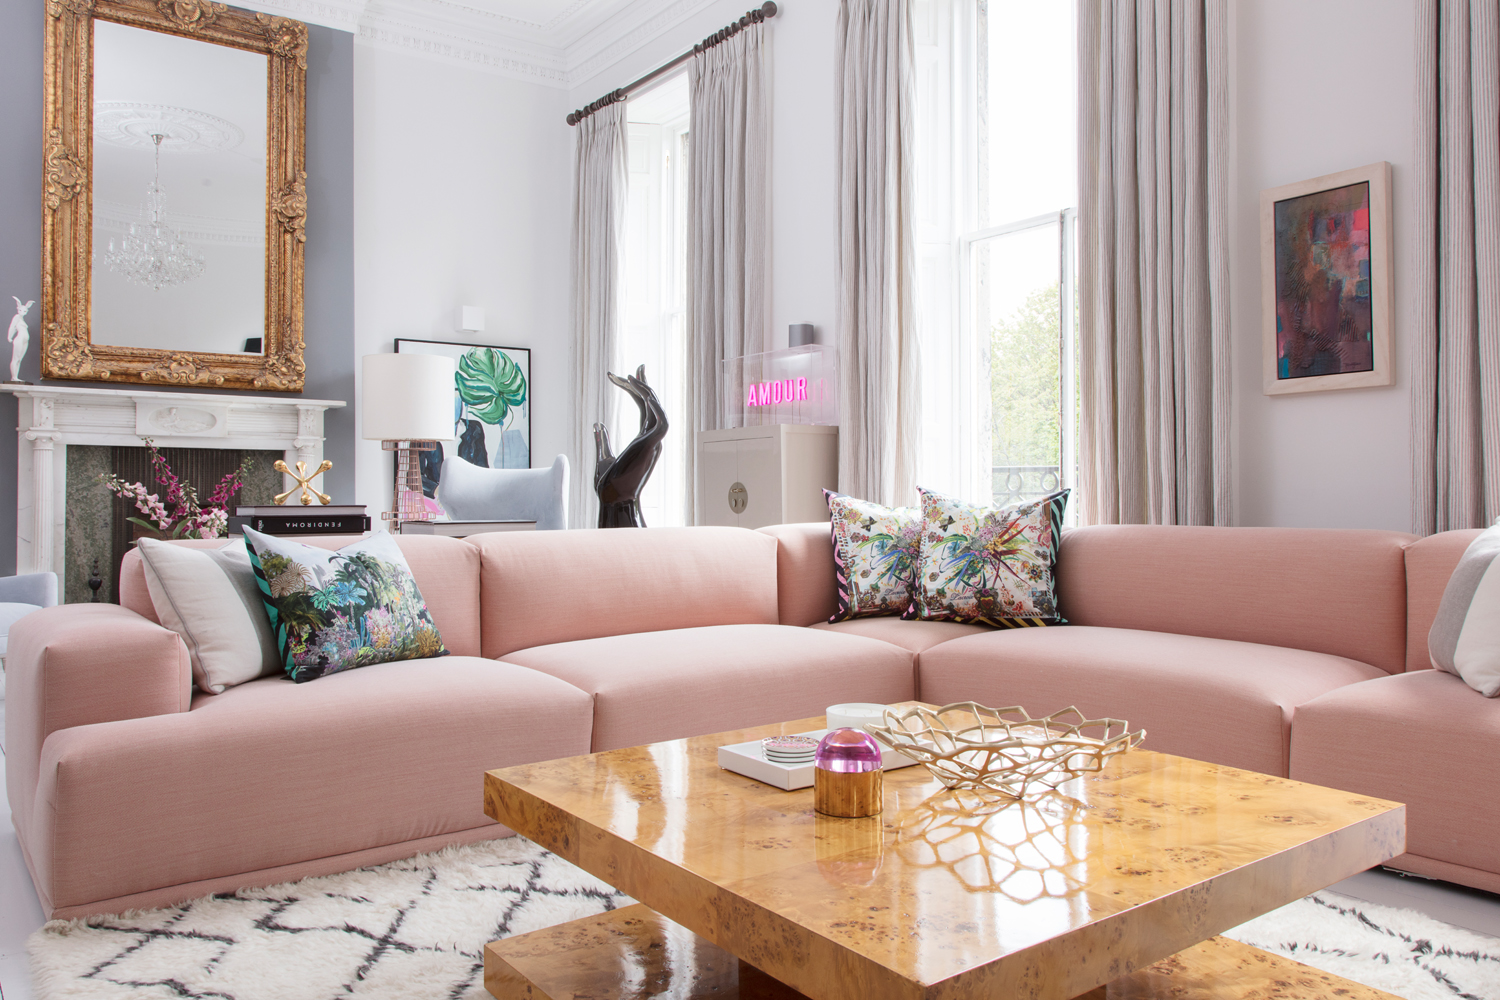 Sofa by Muuto; cushions by Christian Lacroix; coffee table by Jonathan Adler/Photo: Susie Lowe